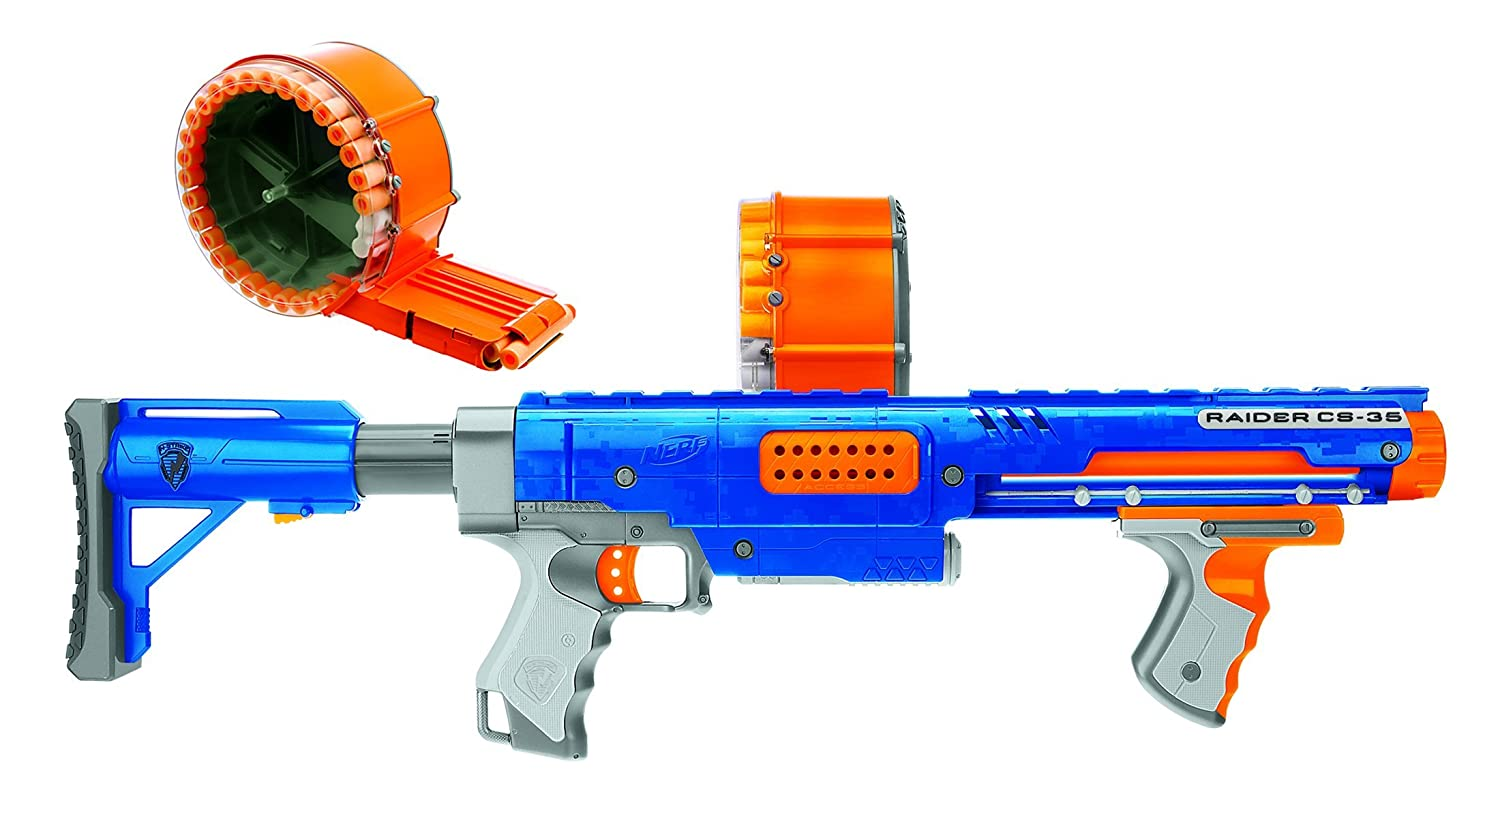 Amazon.com: Nerf Raider CS-35 Dart Blaster - Value Pack with Bonus Darts  (70 Darts): Toys & Games